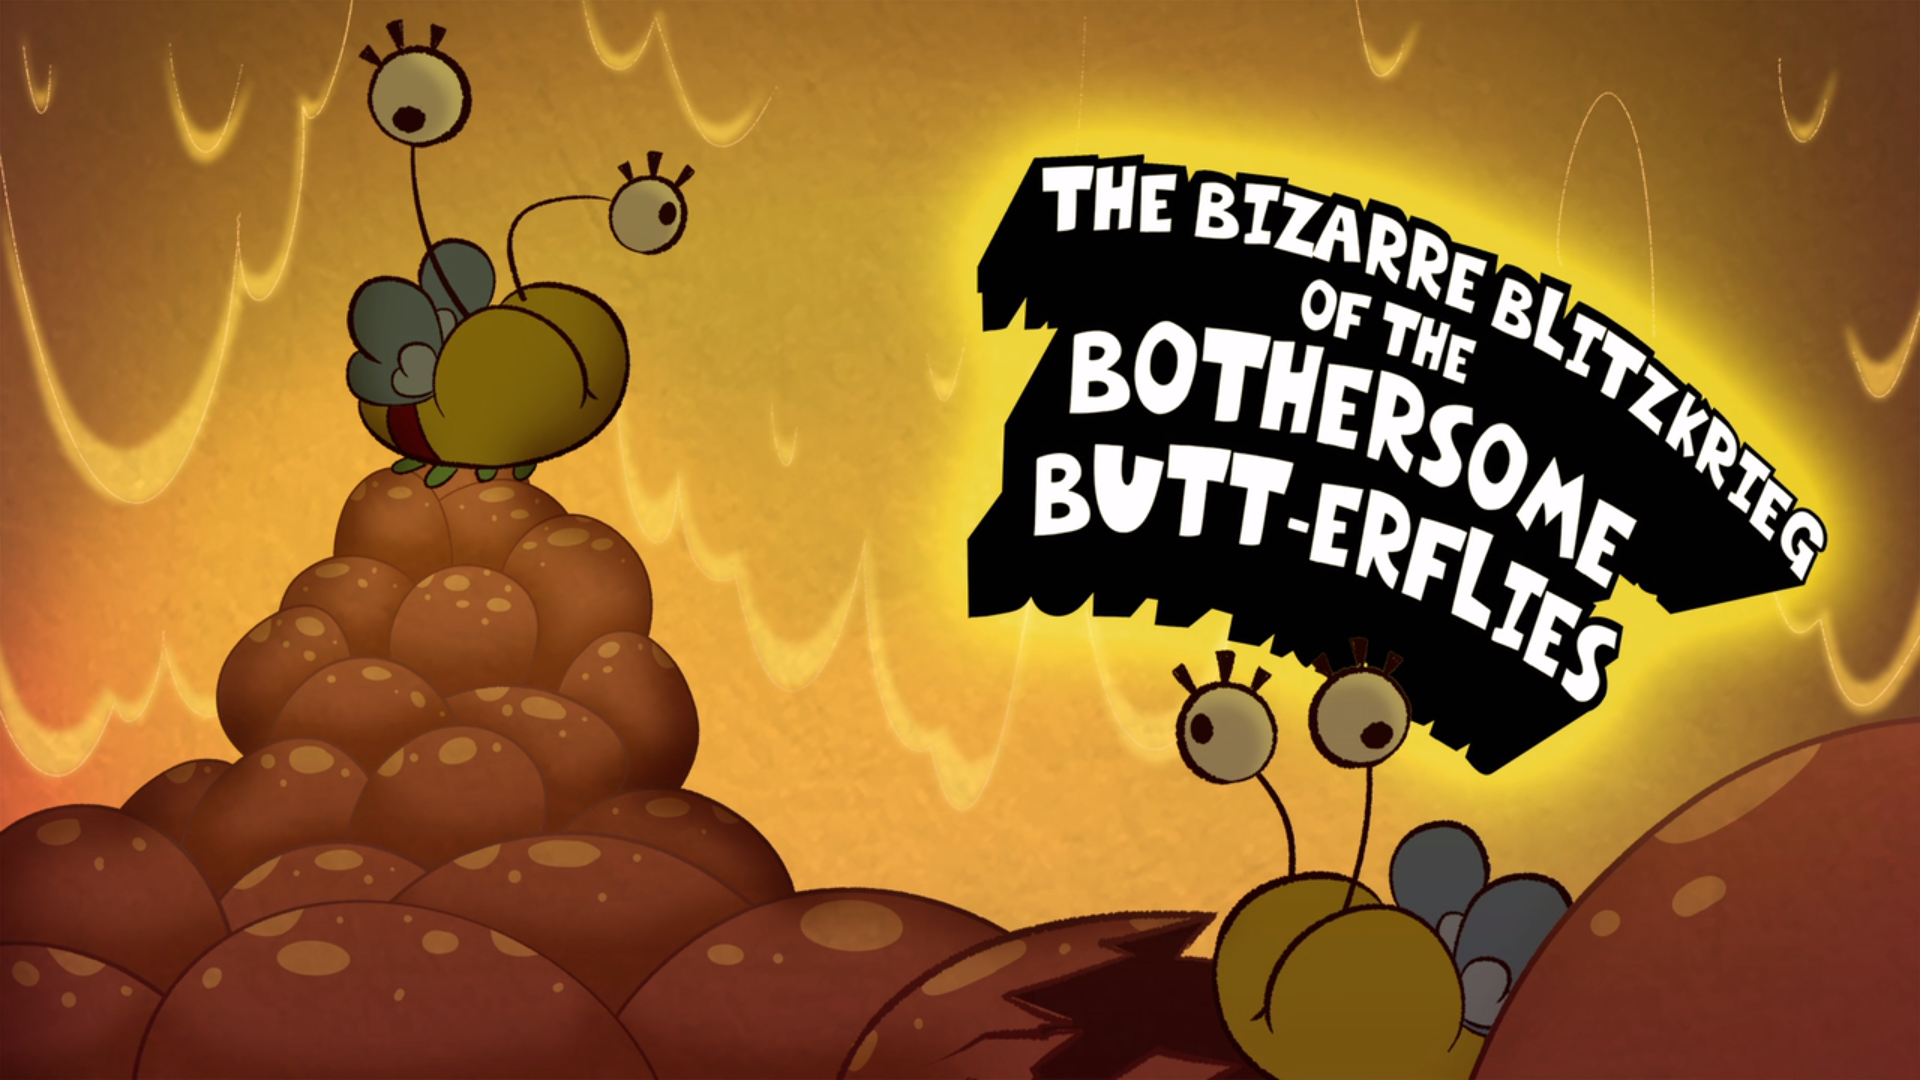 The Bizarre Blitzkrieg of the Bothersome Butt-erflies